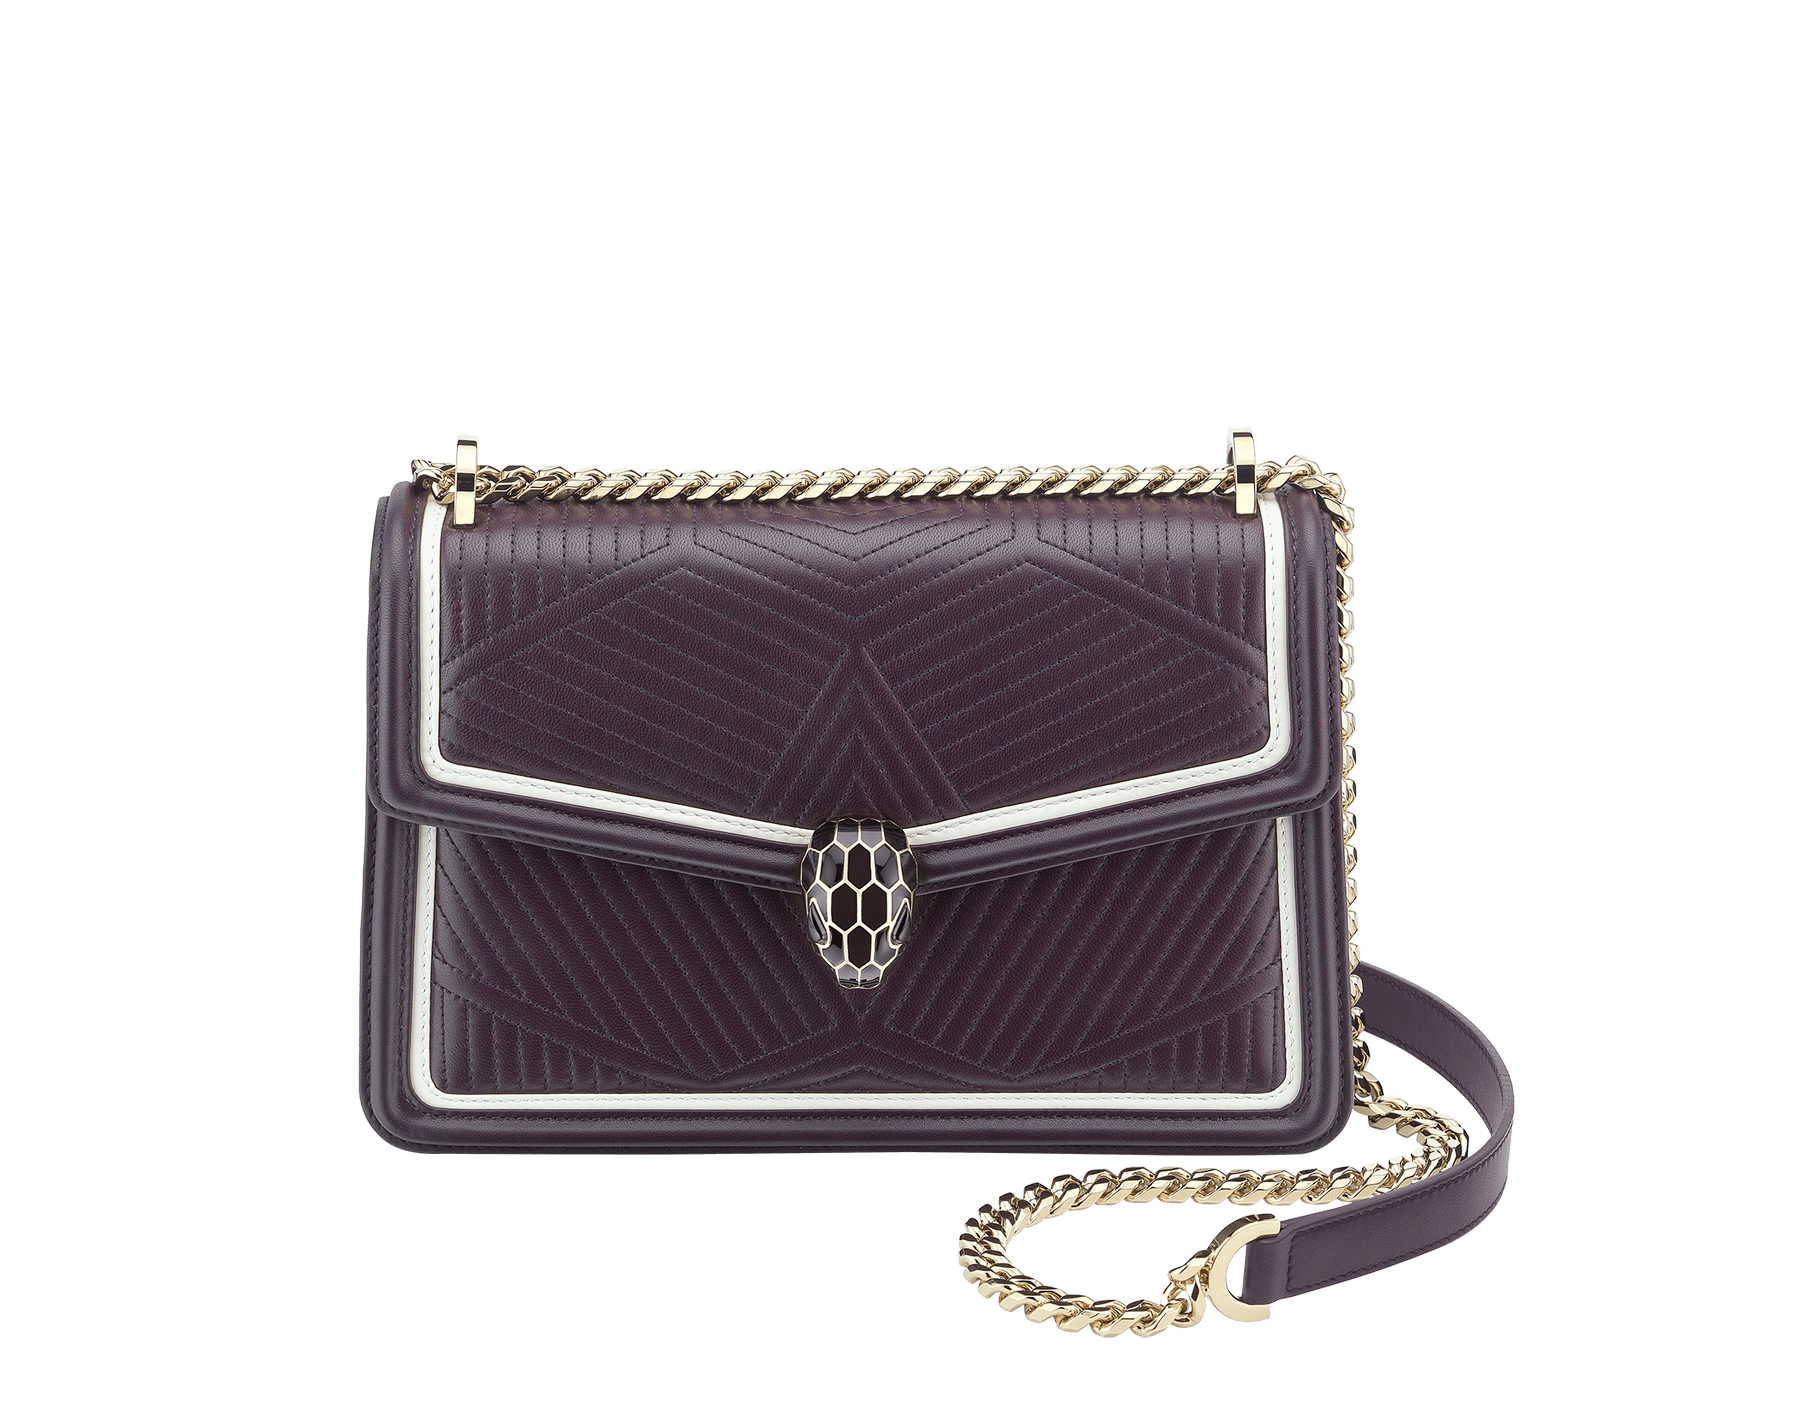 """Serpenti Diamond Blast"" shoulder bag in plum amethyst quilted nappa leather body and tone-on-tone and white calf leather frames. Iconic snakehead closure in light gold-plated brass enriched with plum amethyst and black enamel and black onyx eyes. 288635 image 1"